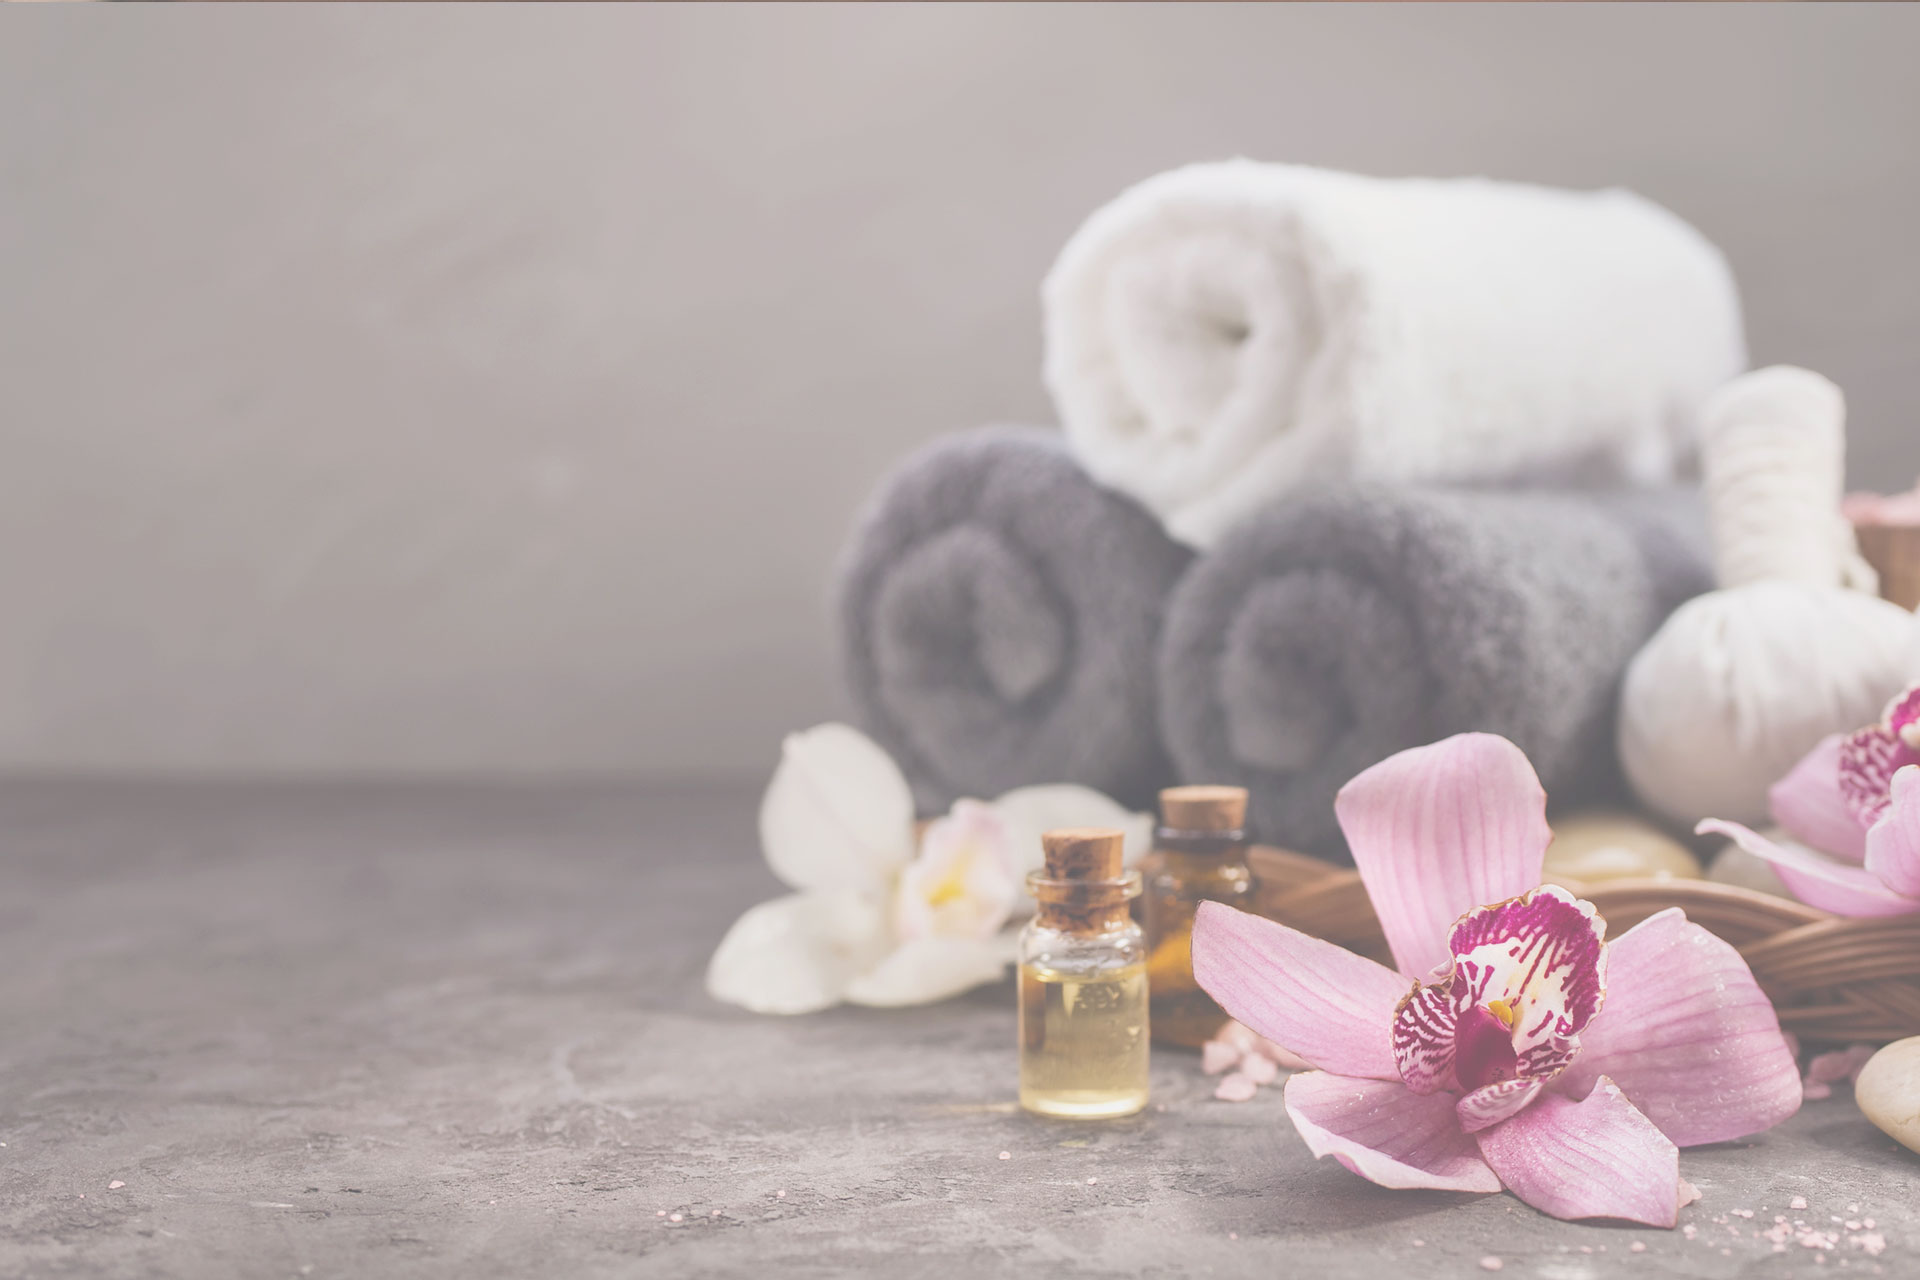 towels with flowers & essential oils